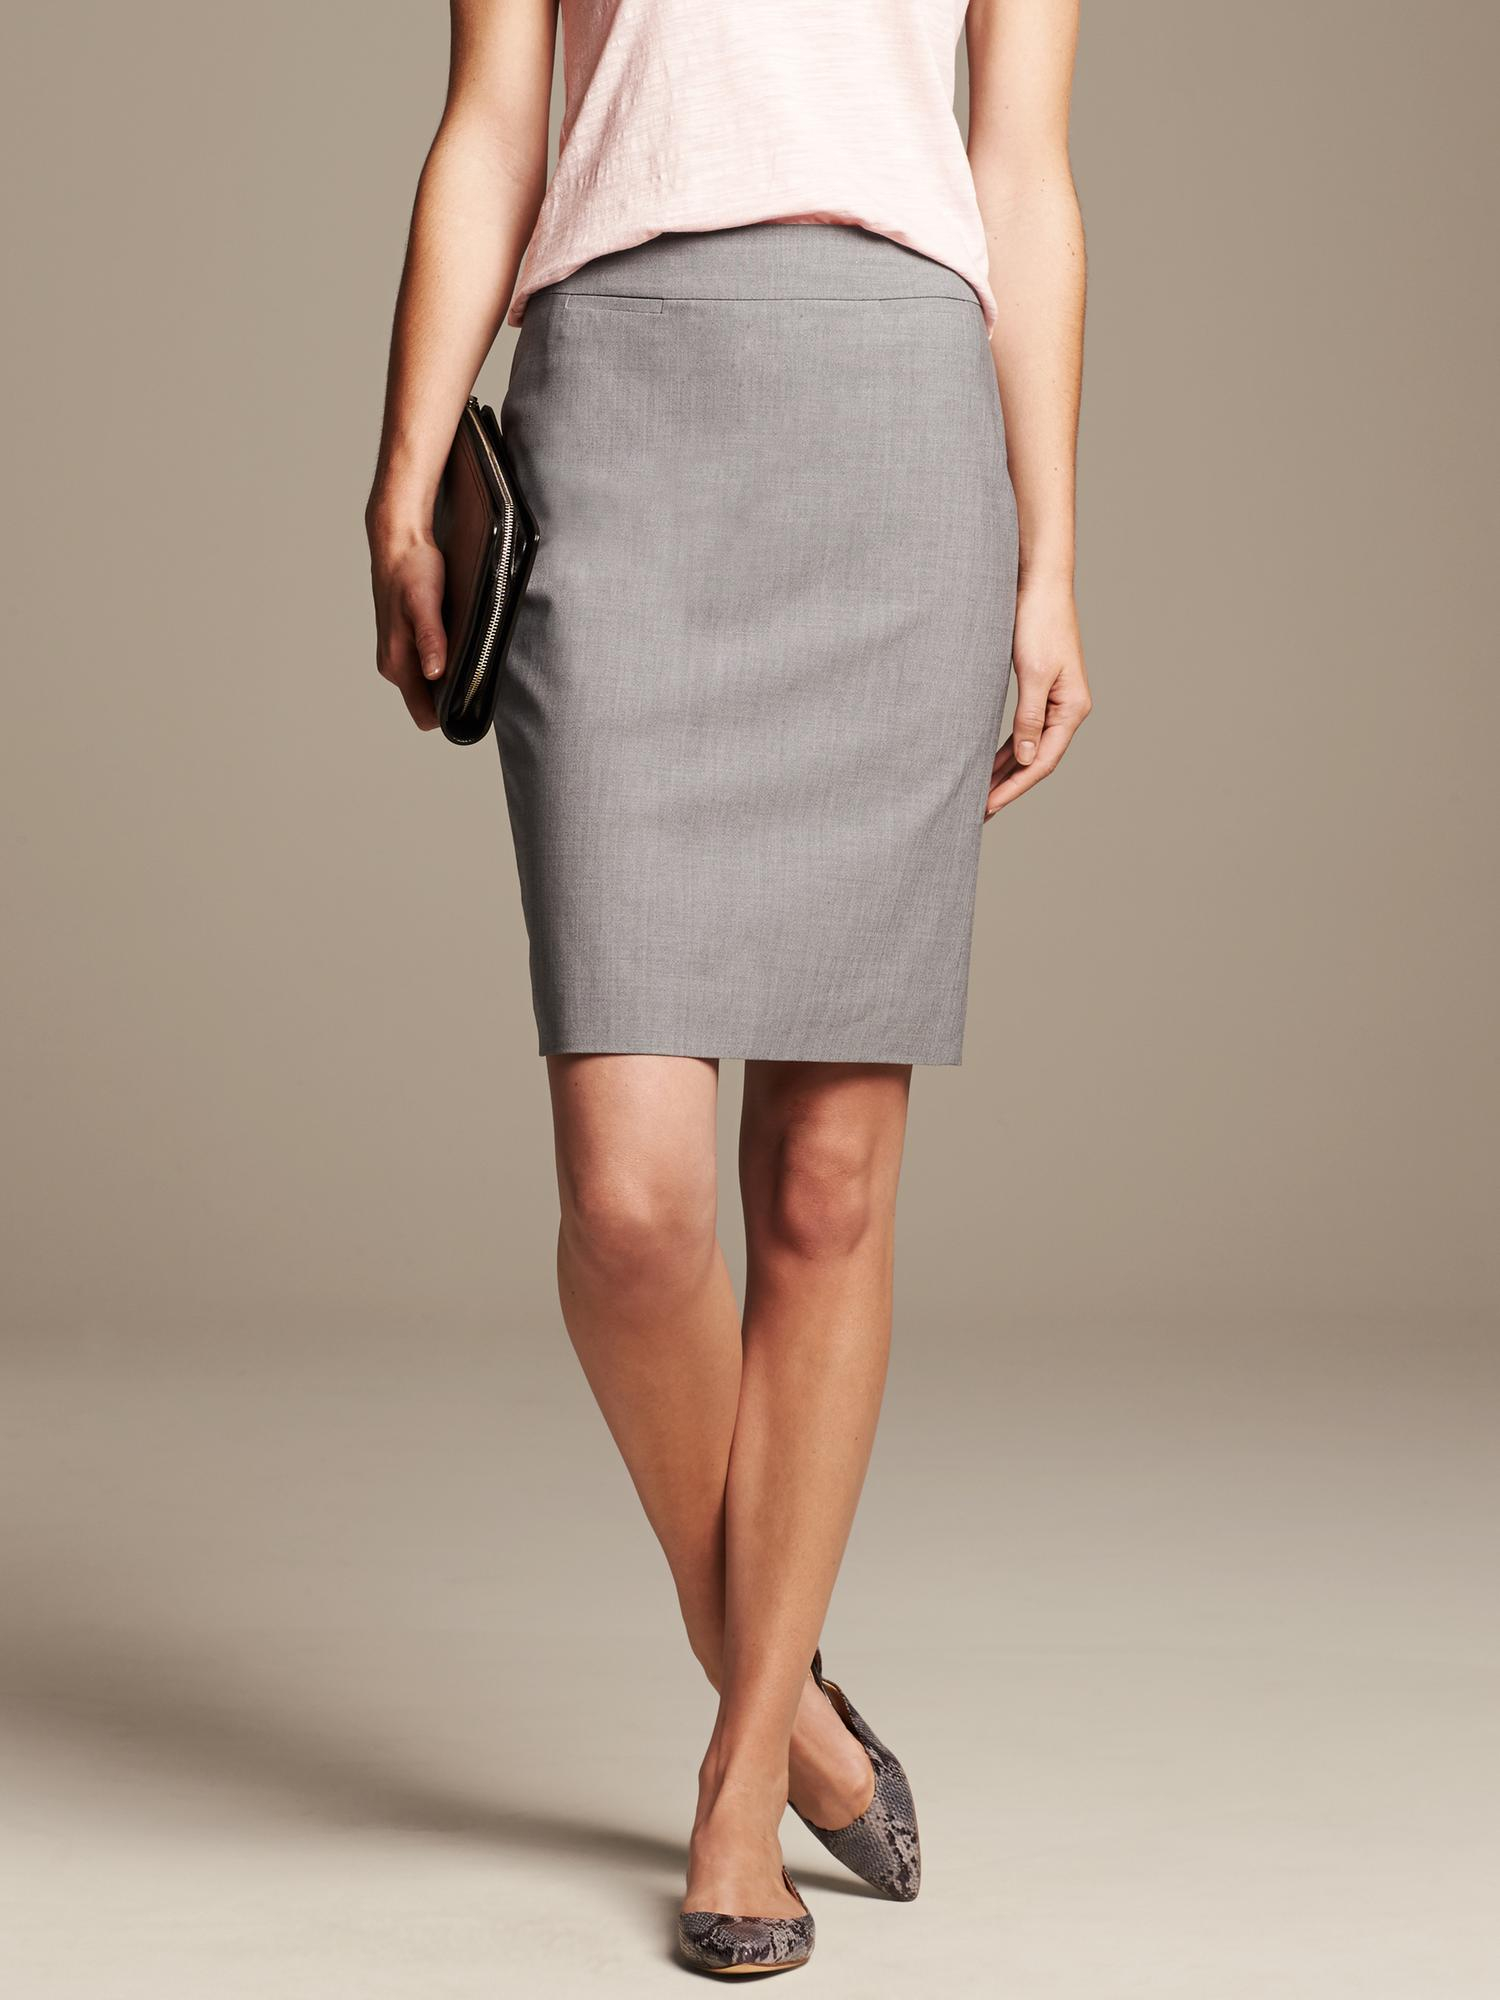 Banana Republic Pencil Skirt - Skirts